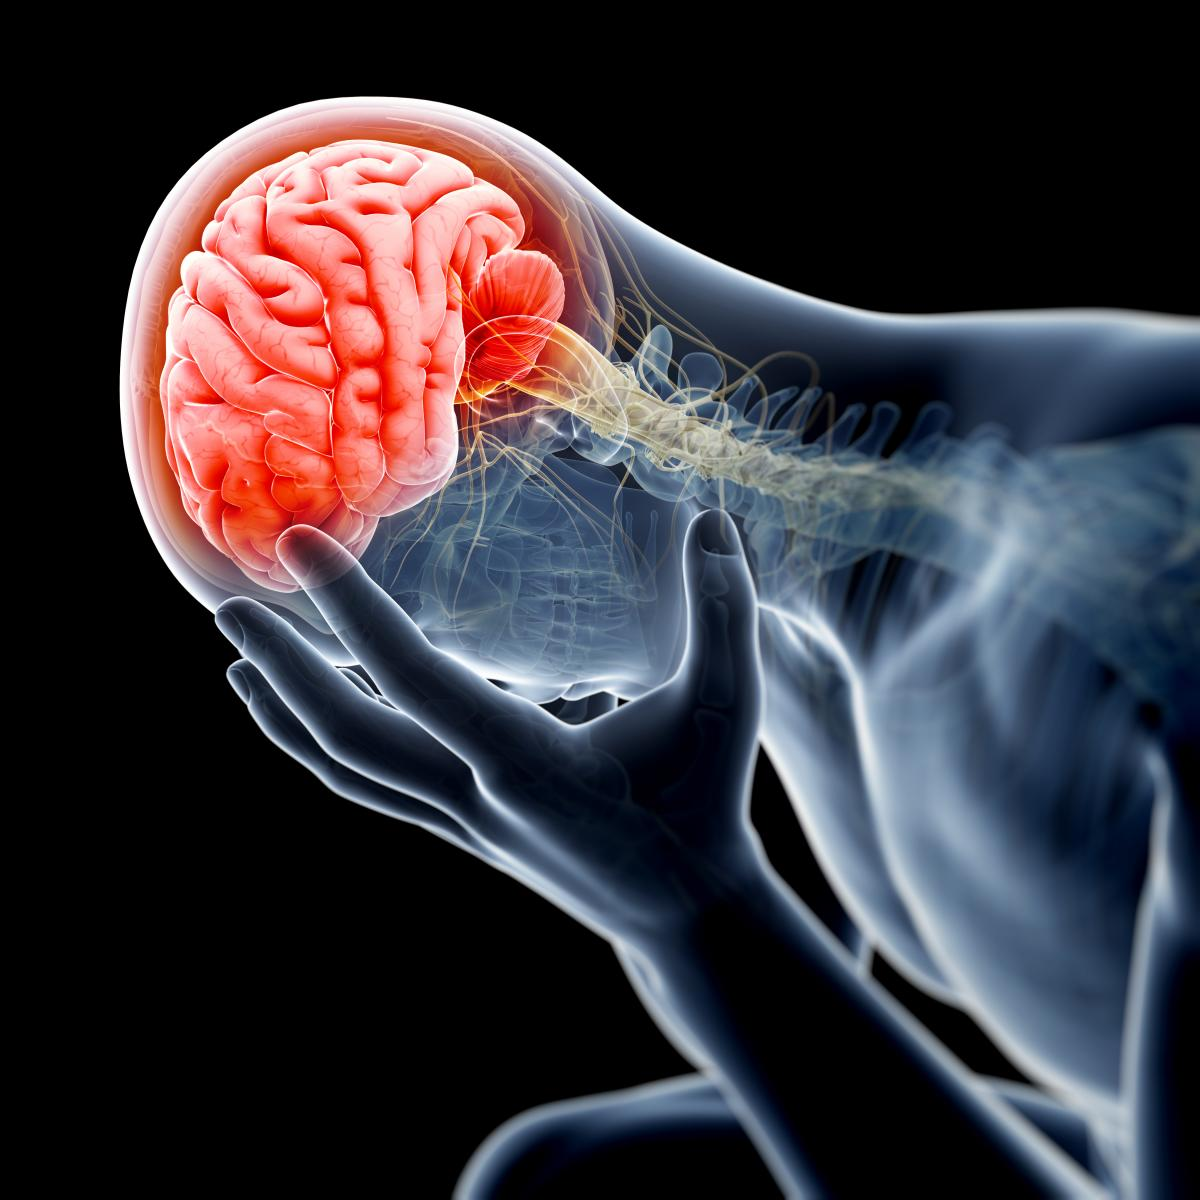 New Study Finds Link Between ADHD & Brain Injuries